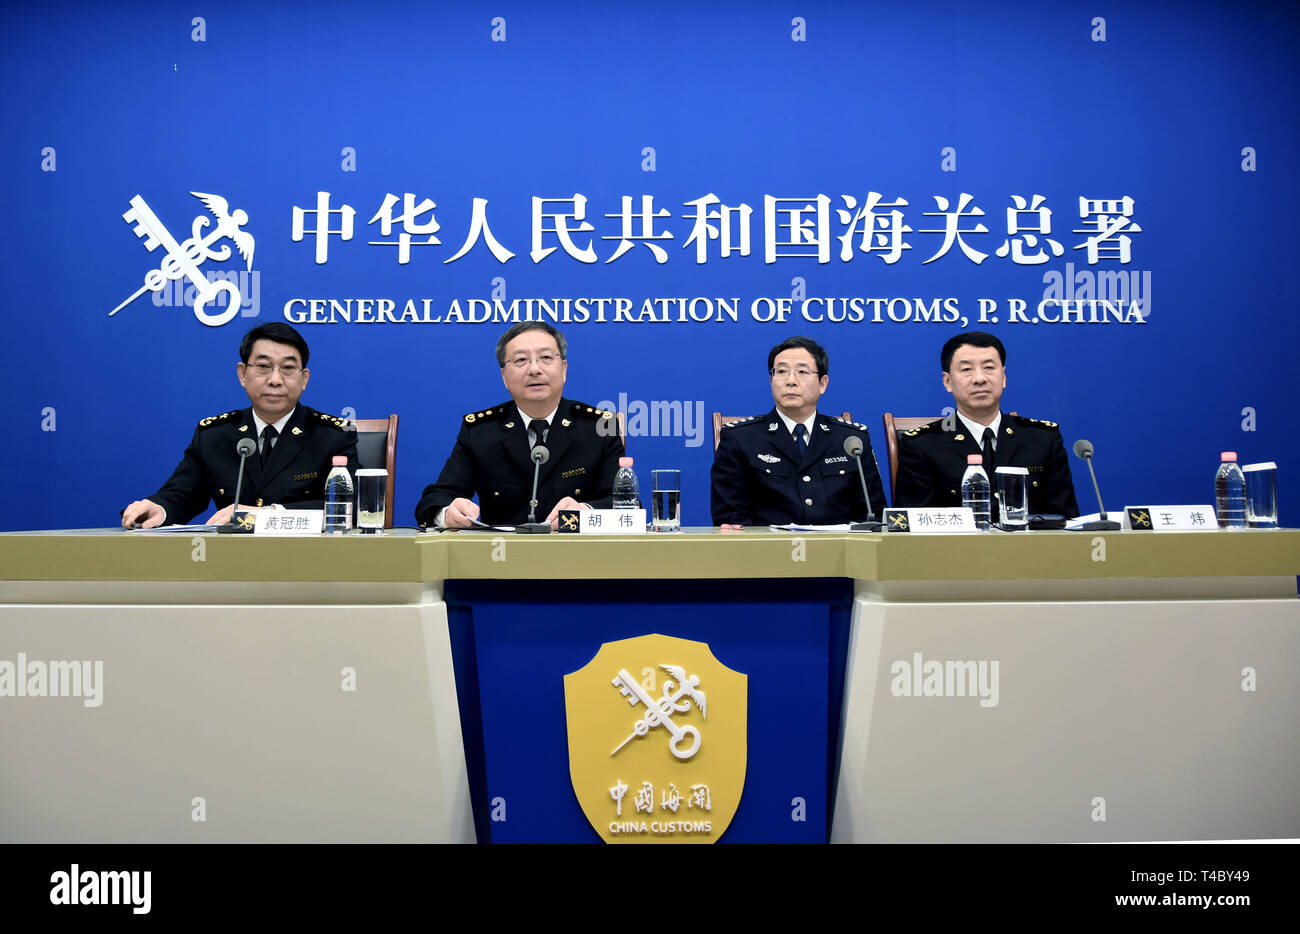 Beijing, China. 15th Apr, 2019. Vice Minister of the General Administration of Customs of China (GAC) Hu Wei (2nd L) speaks at a press conference in Beijing, capital of China, April 15, 2019. Chinese customs seized 7.48 tonnes of smuggled ivory during an operation on March 30, the GAC said in a press release Monday. It is the largest seizure of smuggled elephant tusks by Chinese customs in recent years. Credit: Pan Xu/Xinhua/Alamy Live News Stock Photo